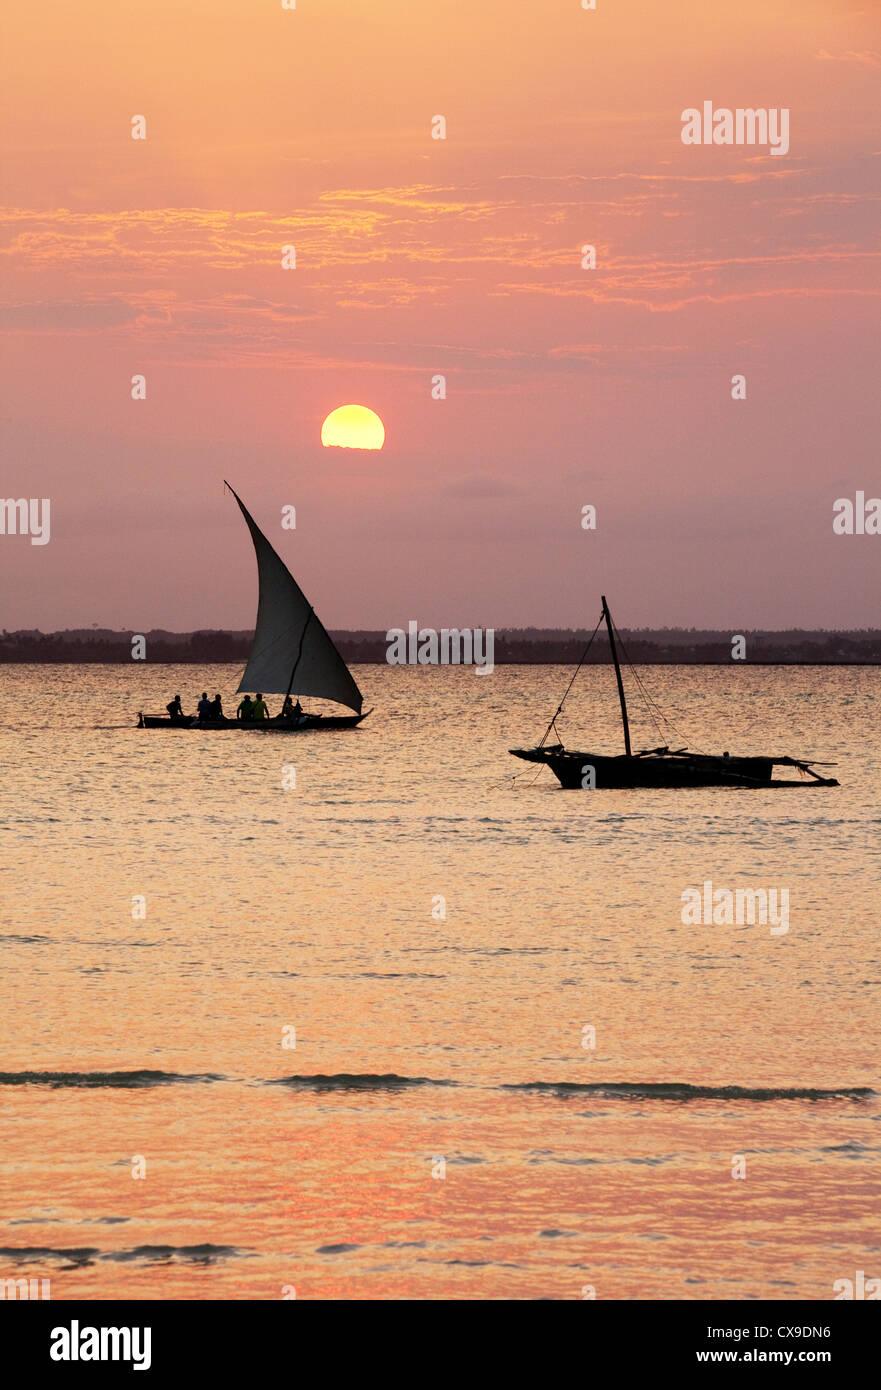 Two dhows at sunset, Michamwi, Zanzibar Africa - Stock Image